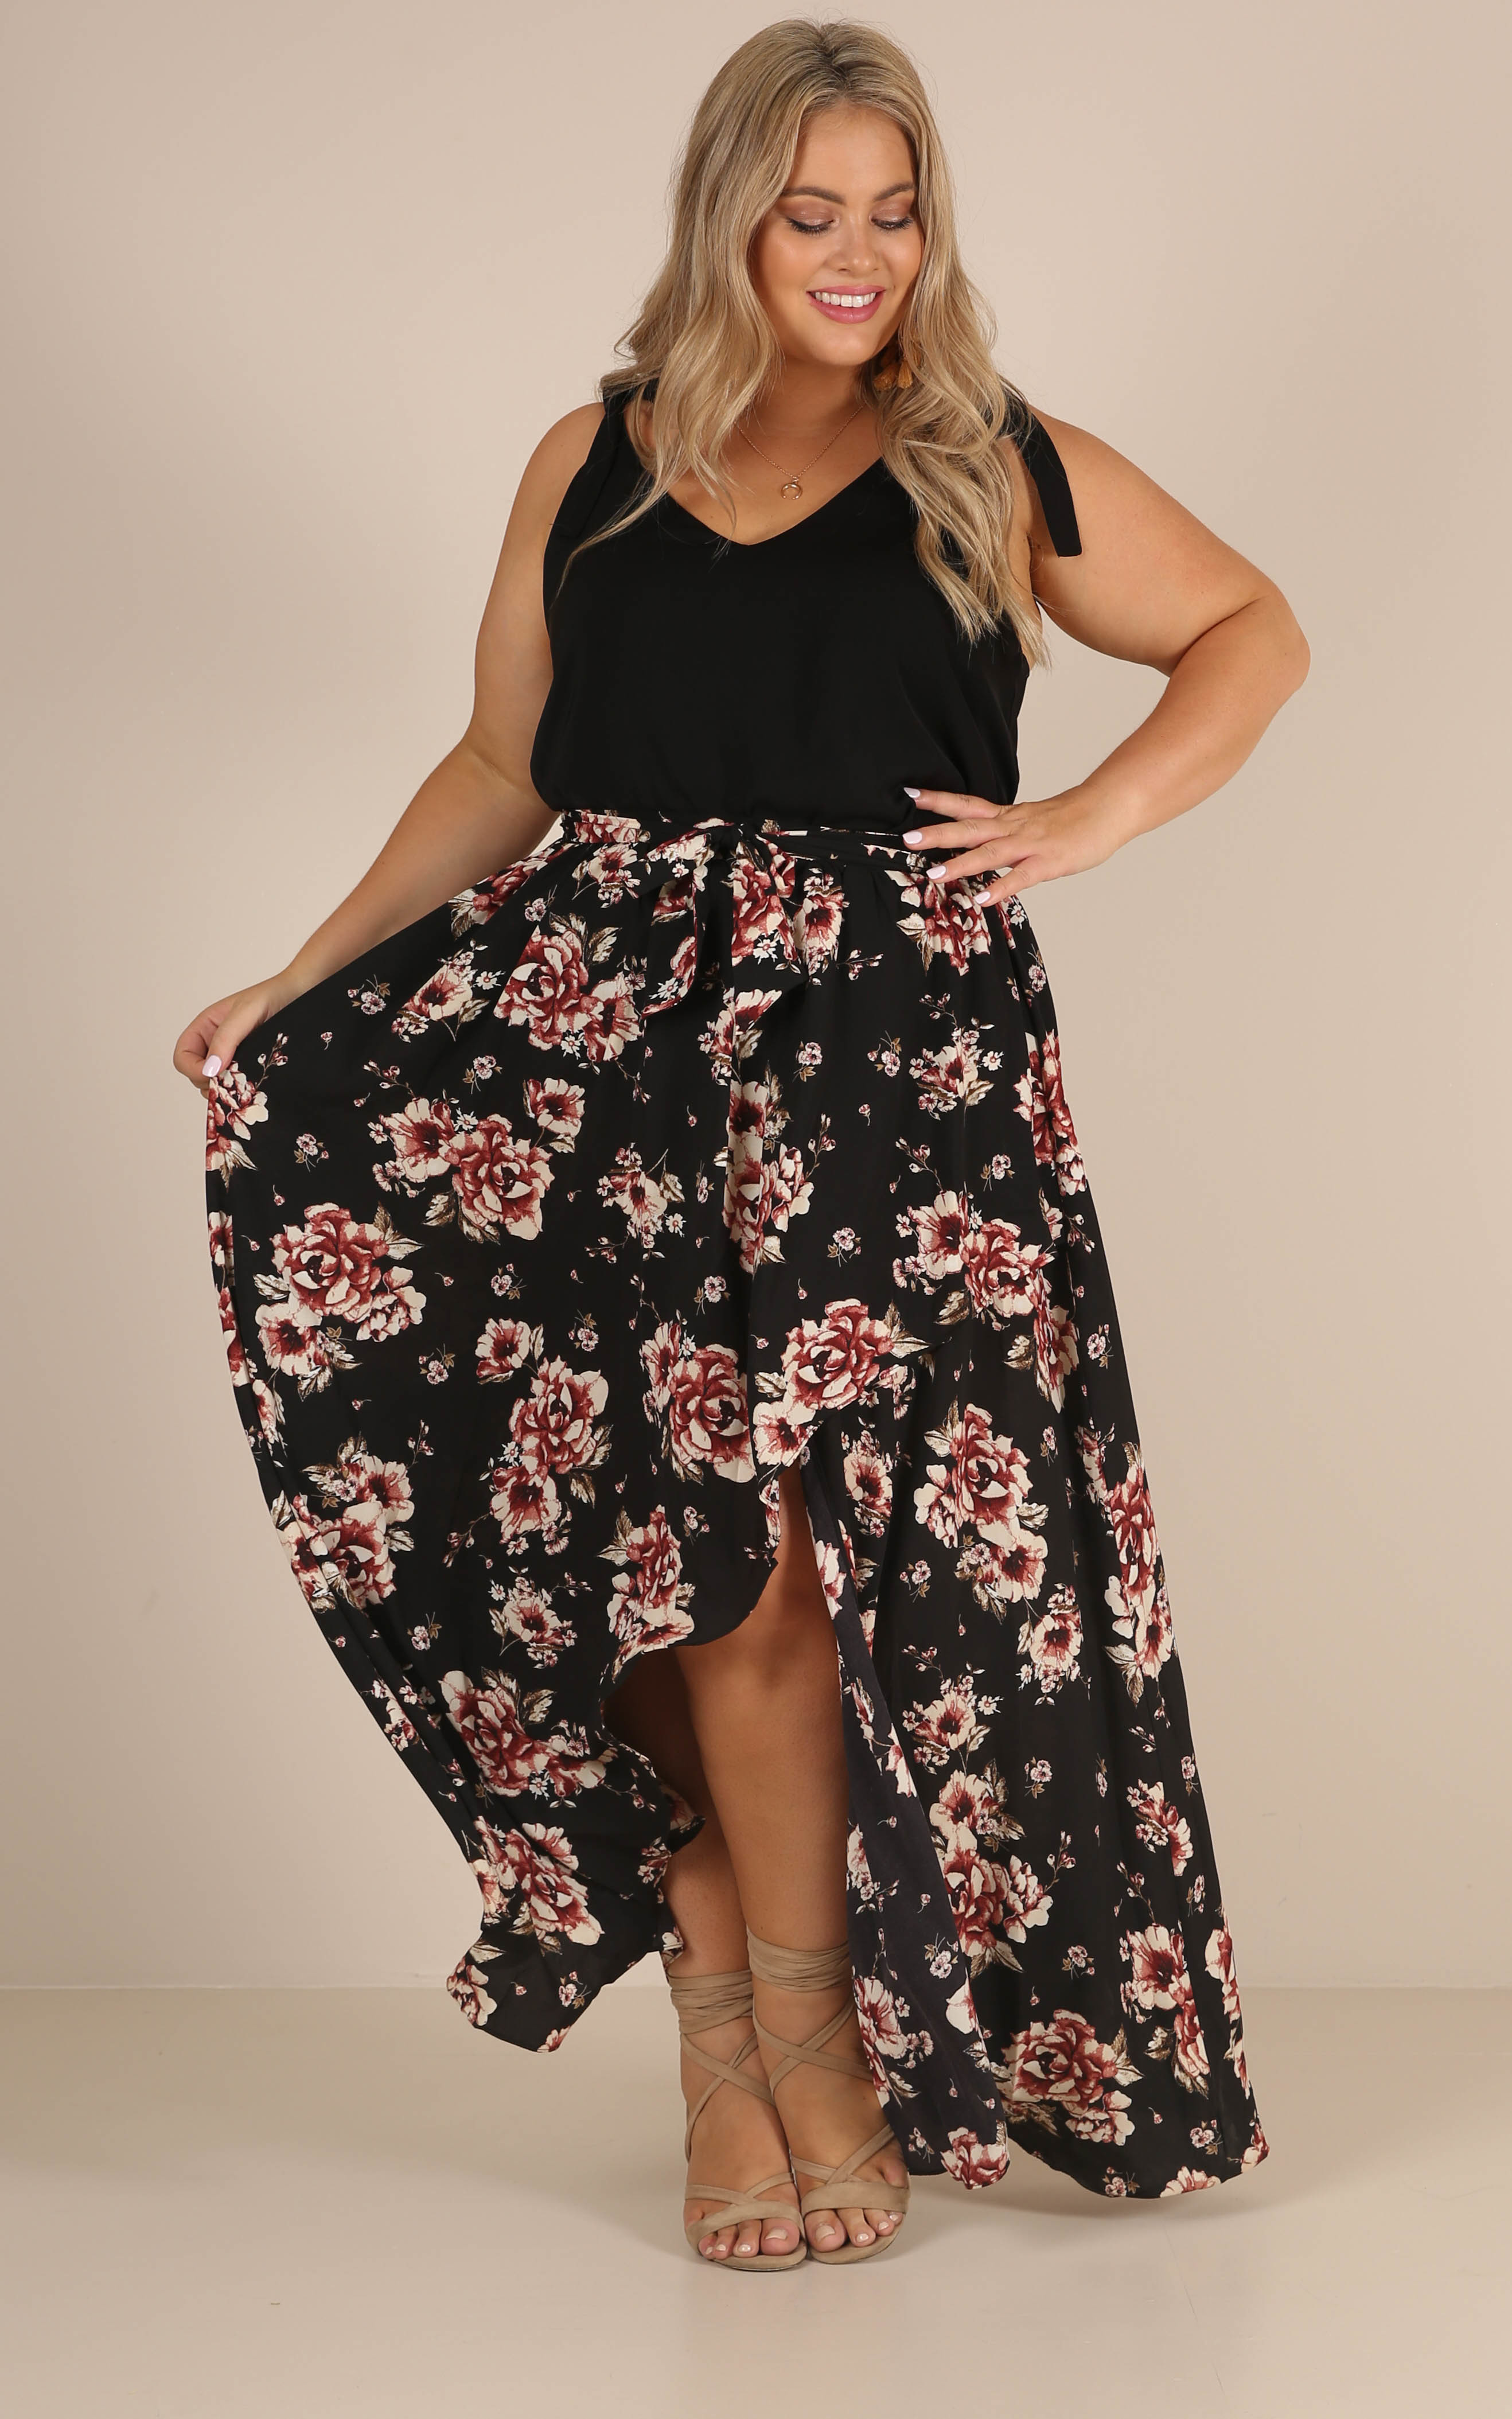 Breath Of Fresh Air maxi skirt in black floral - 20 (XXXXL), Black, hi-res image number null